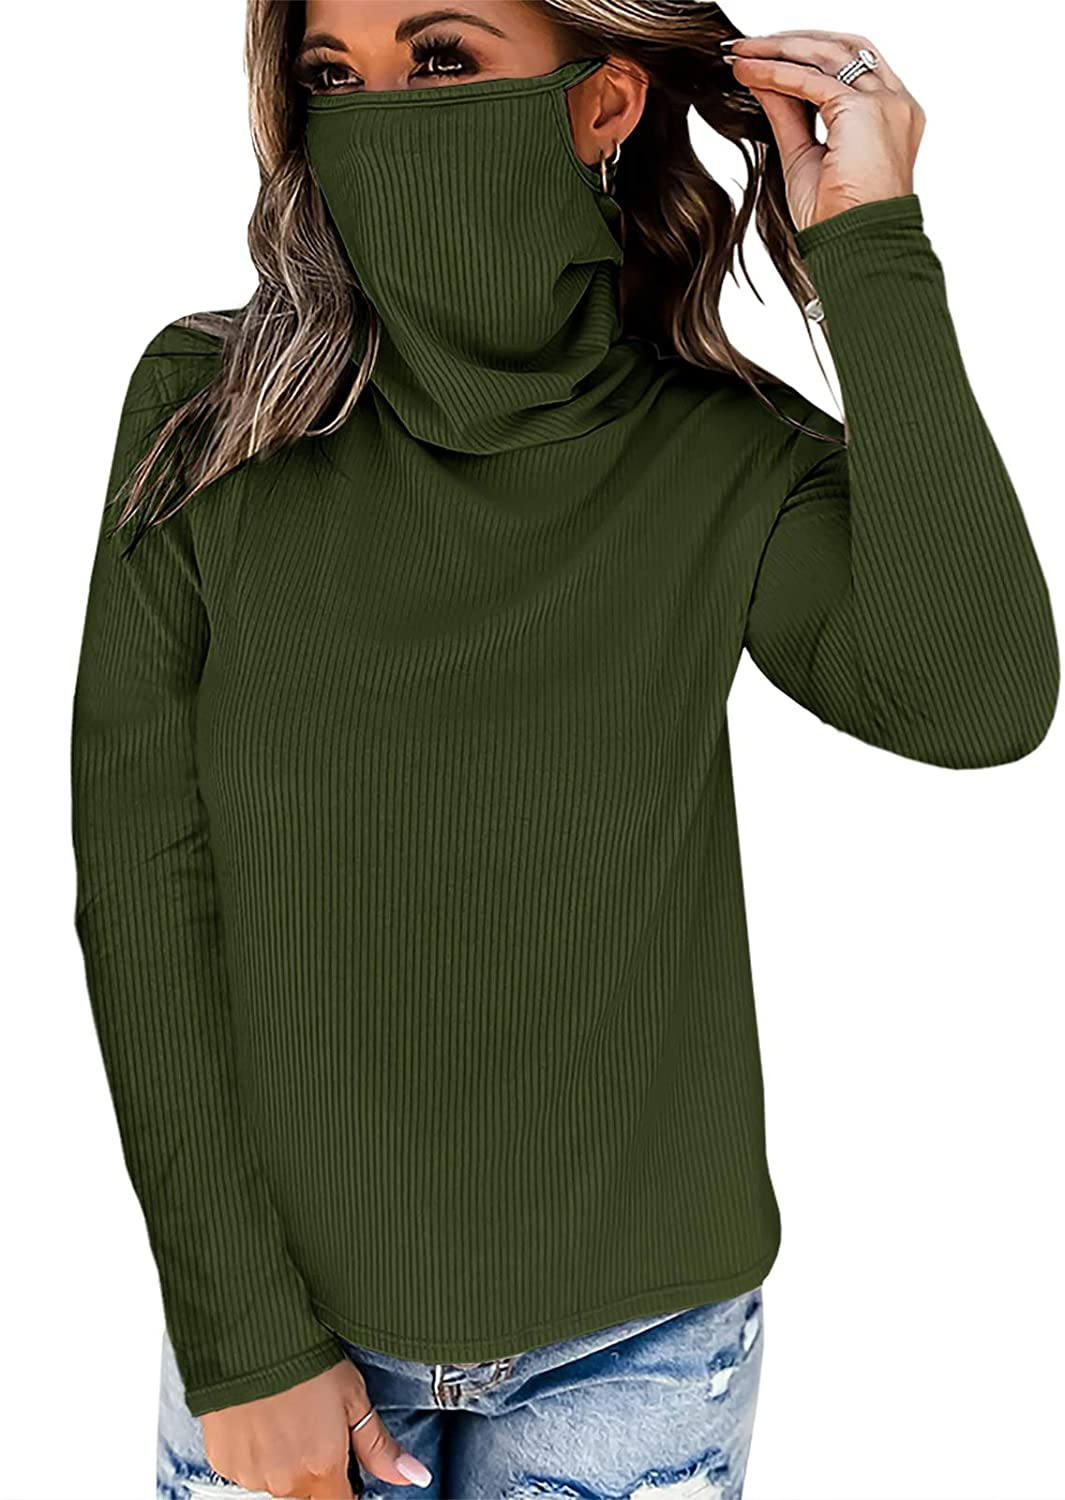 Vermisse Womens Face Mask Long Sleeve Shirt Cowl Neck Ribbed Knit Blouse Top